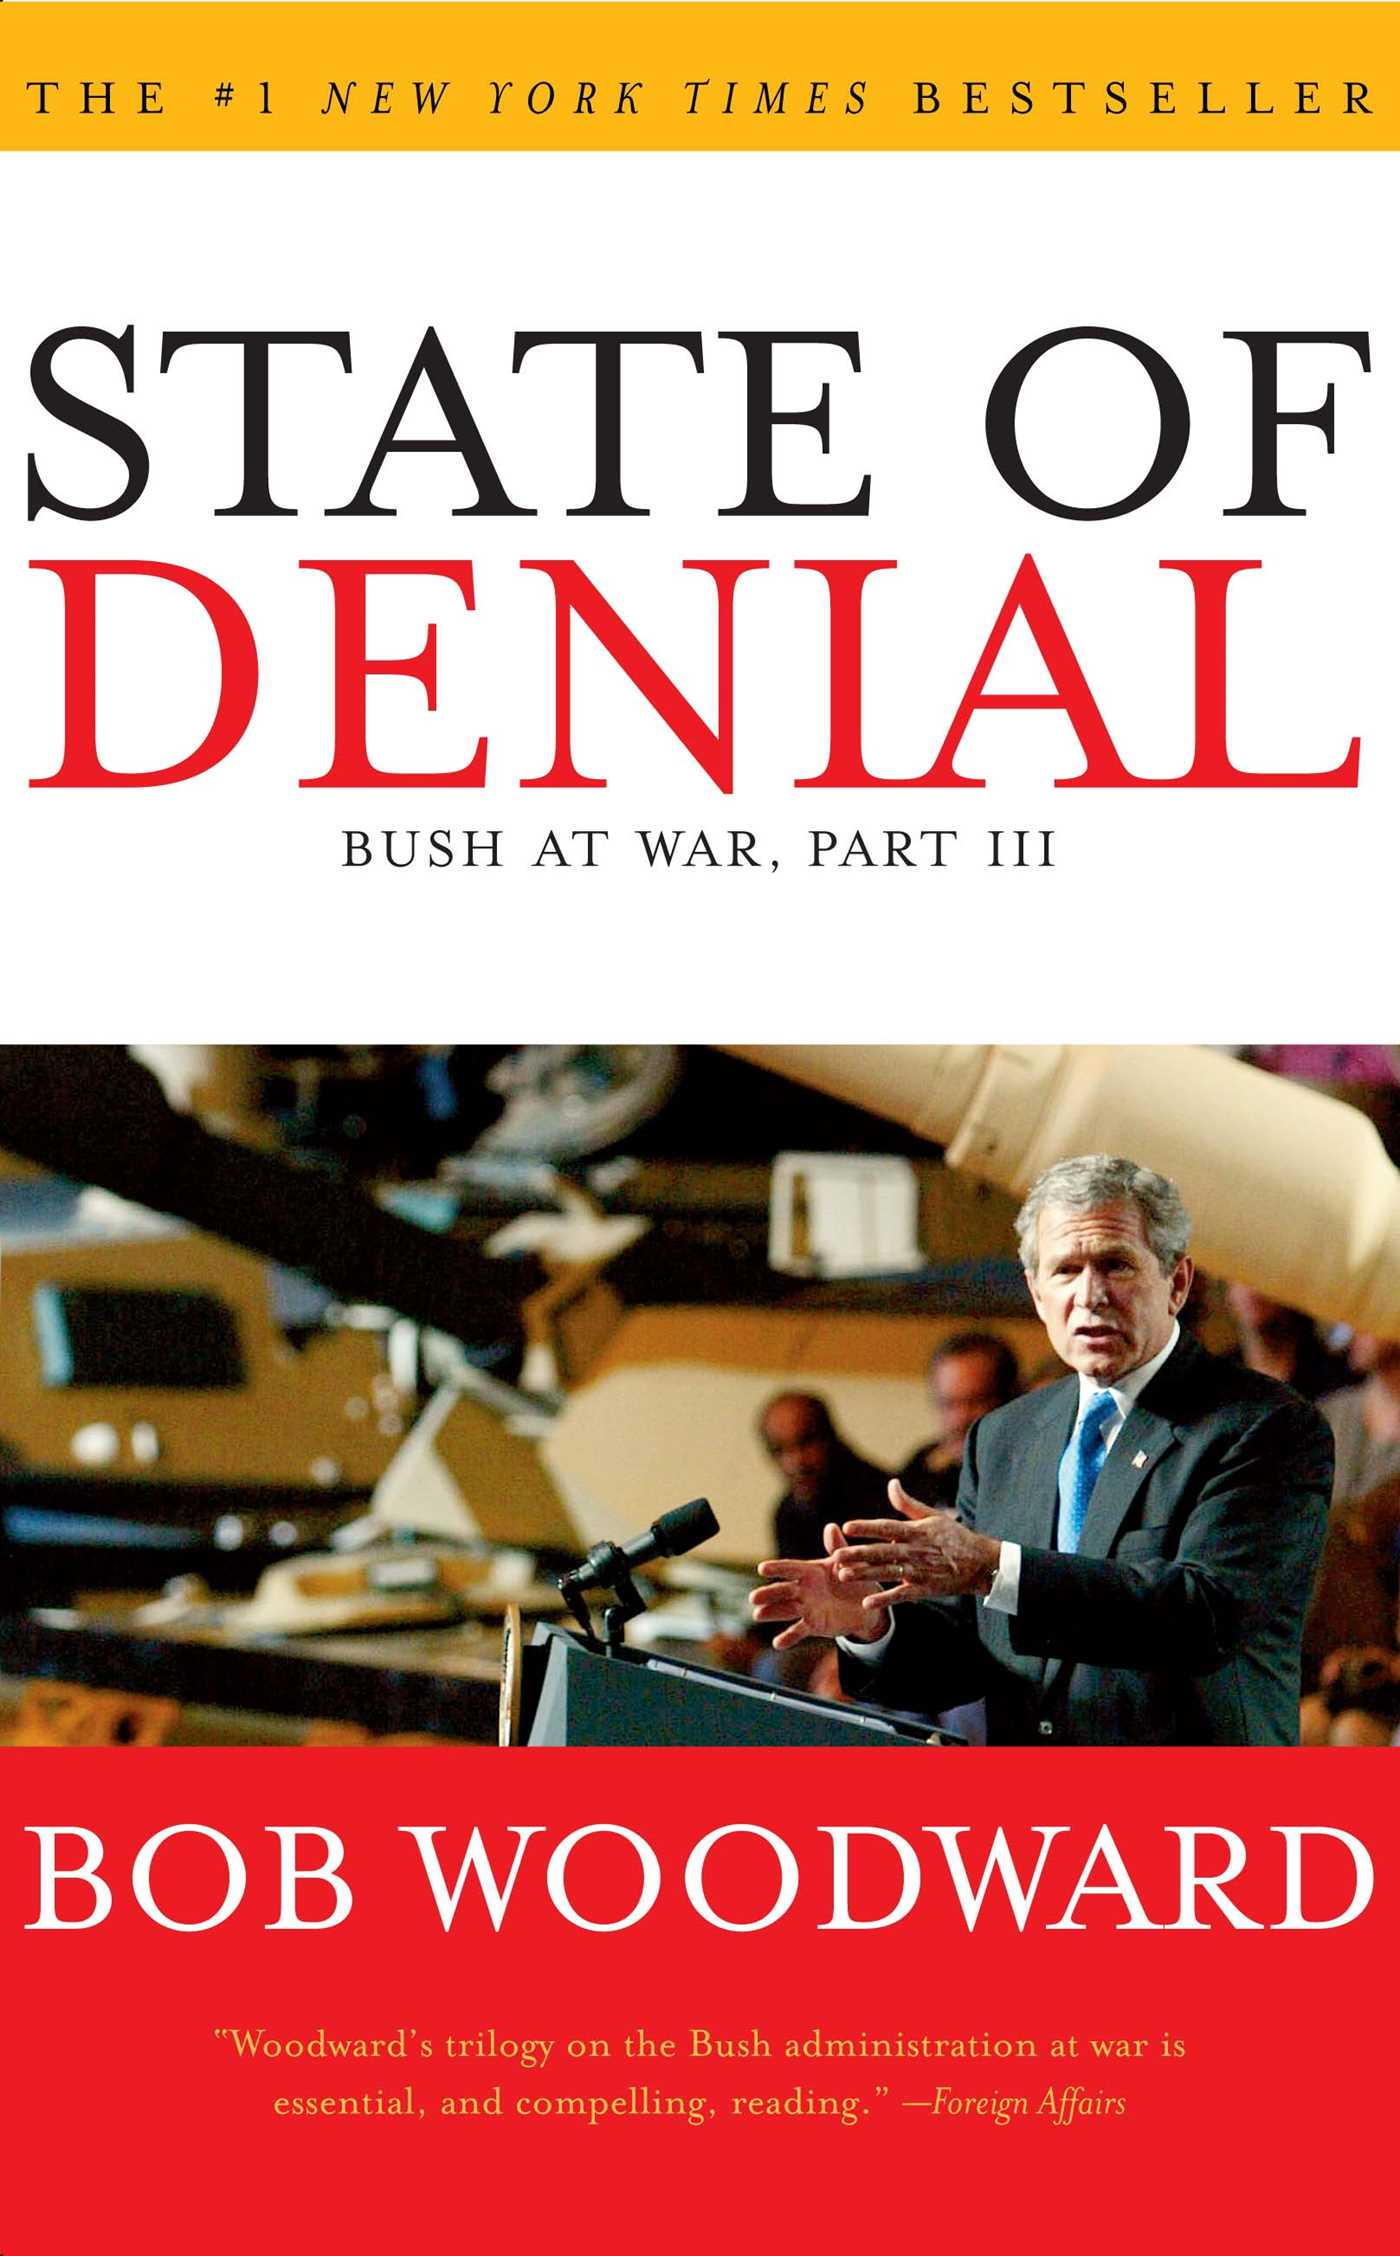 State of denial 9780743293259 hr